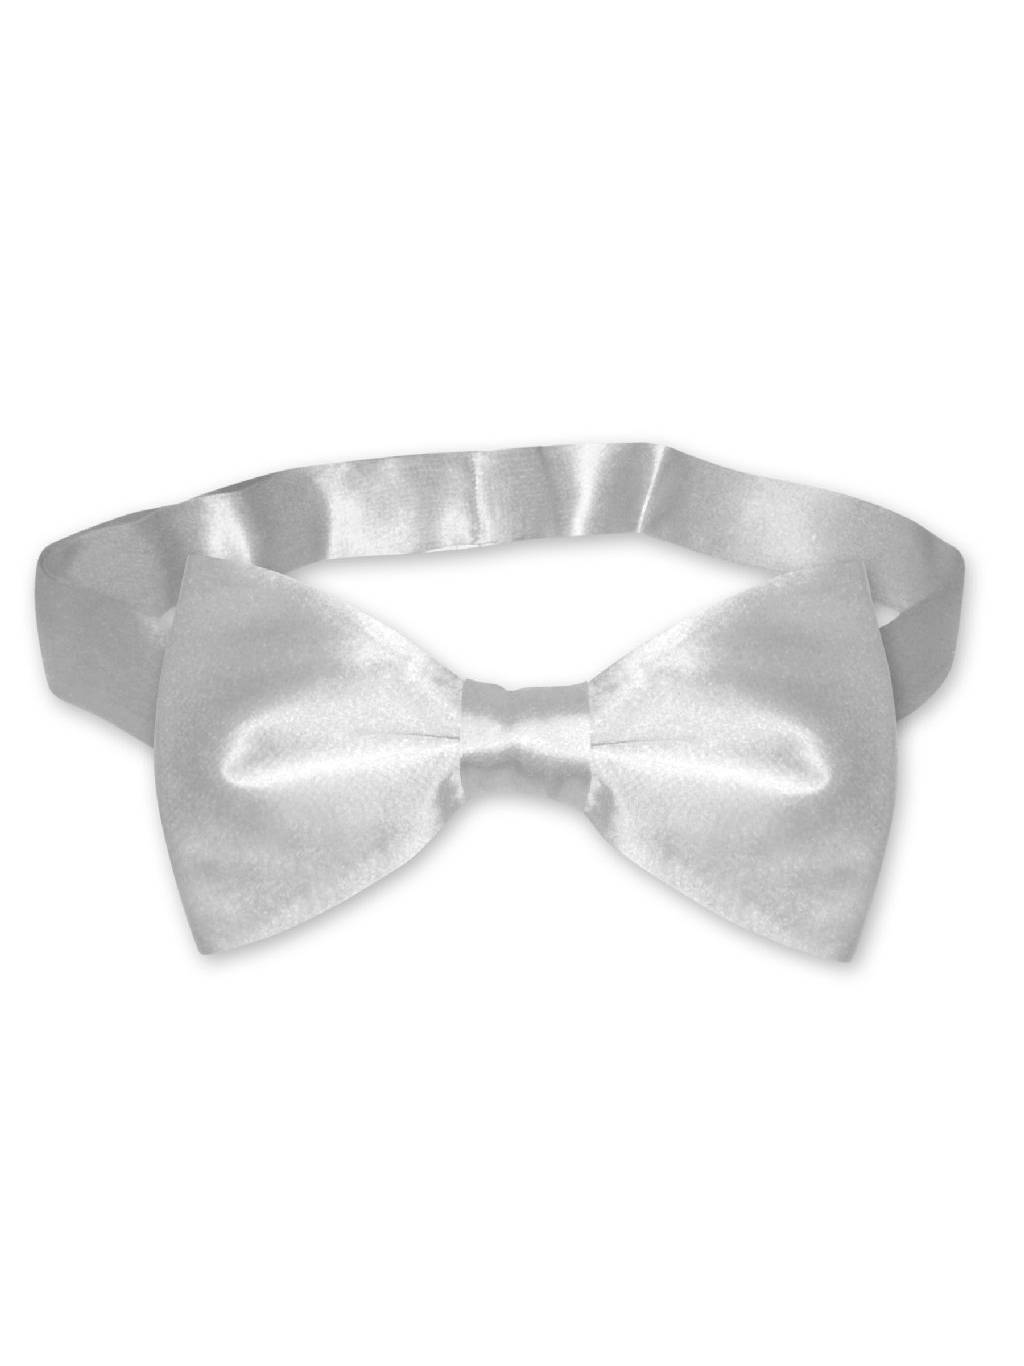 BIAGIO 100/% SILK BOWTIE Solid OFF-WHITE IVORY Color Mens Bow Tie for Tux Suit